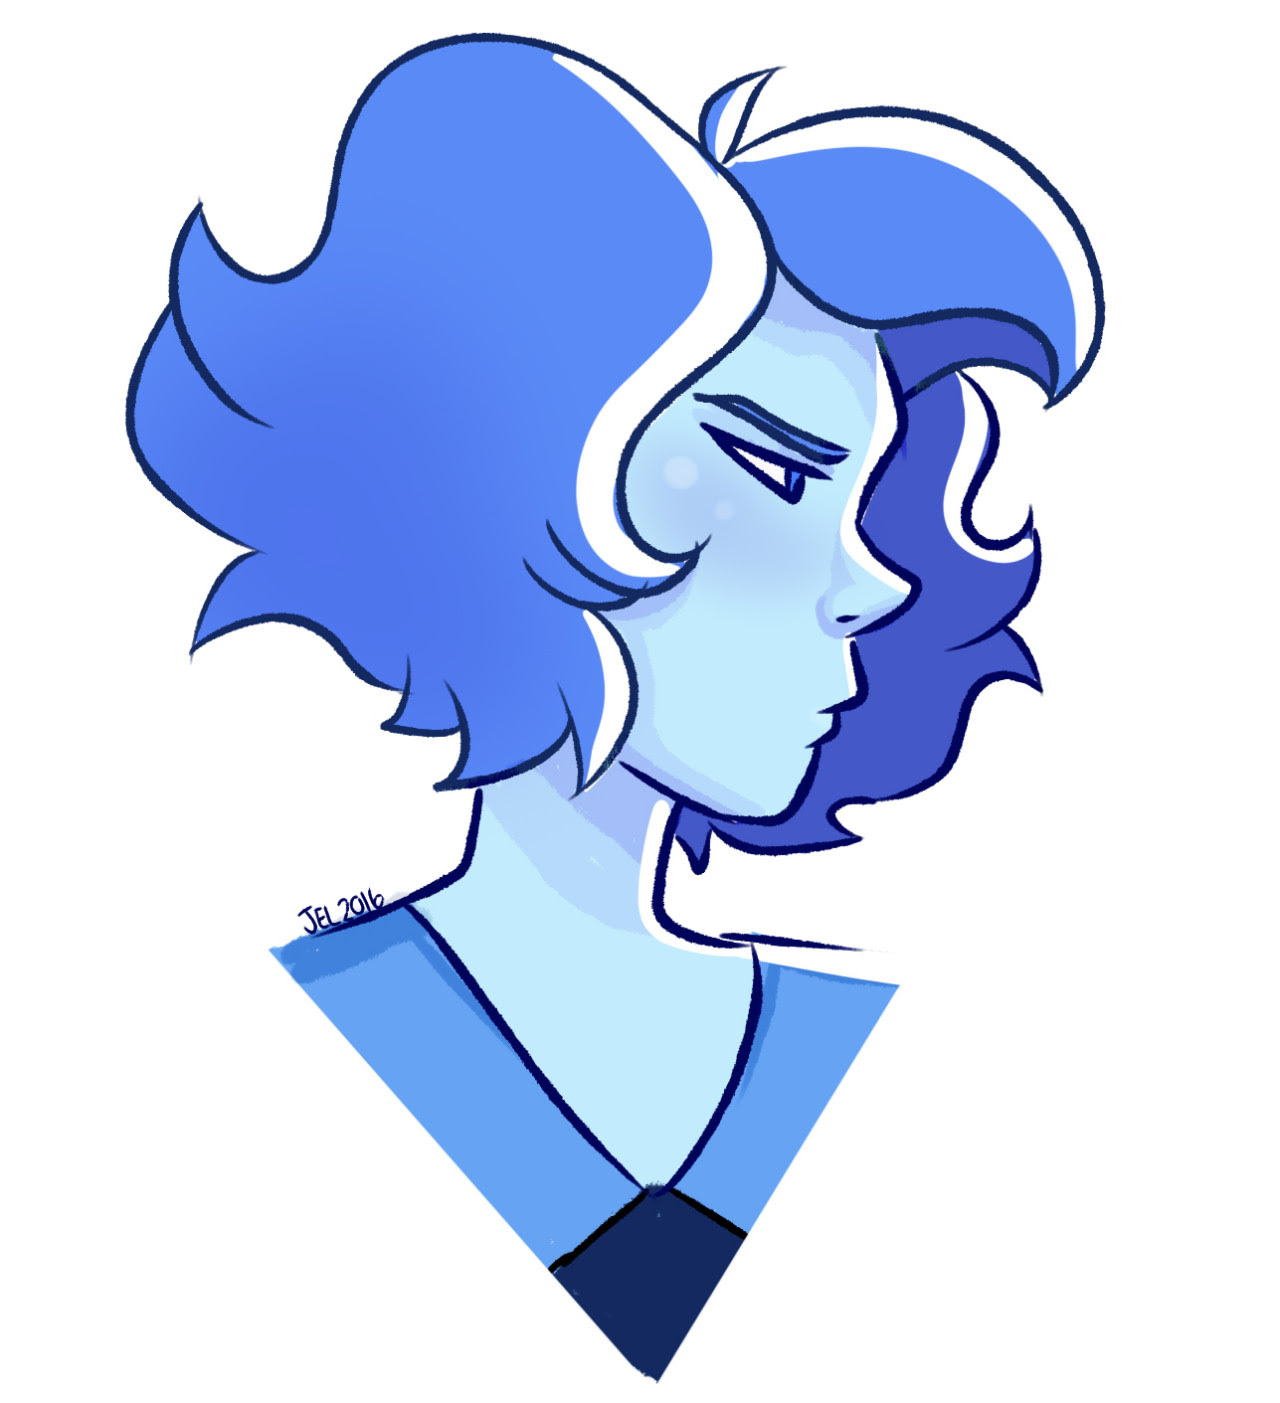 haven't drawn Lapis in a while so here we go